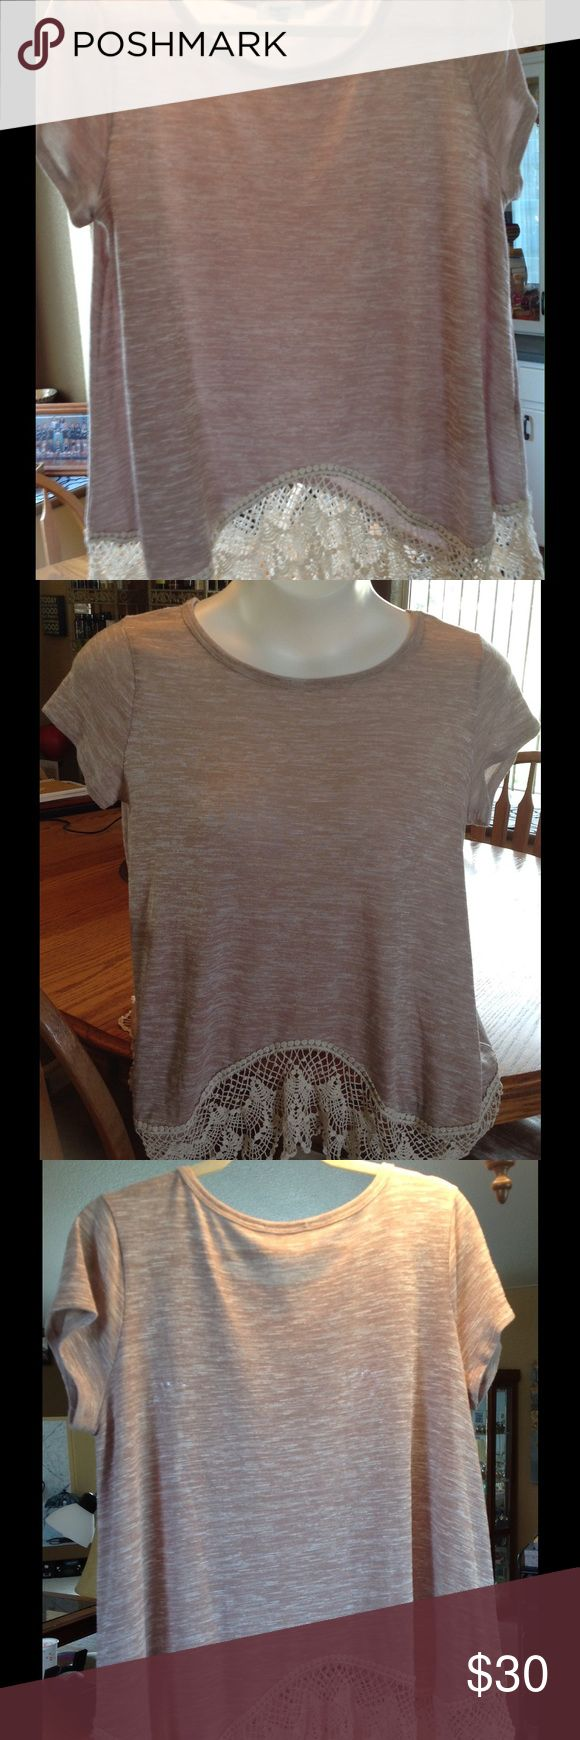 NWOT short sleeve very light sweater.  Brand new Light tan and cream short sleeve top with lace bottom. Size Large. 65% Rayon. 35% polyester.  Hand Wash Hayden Tops Blouses